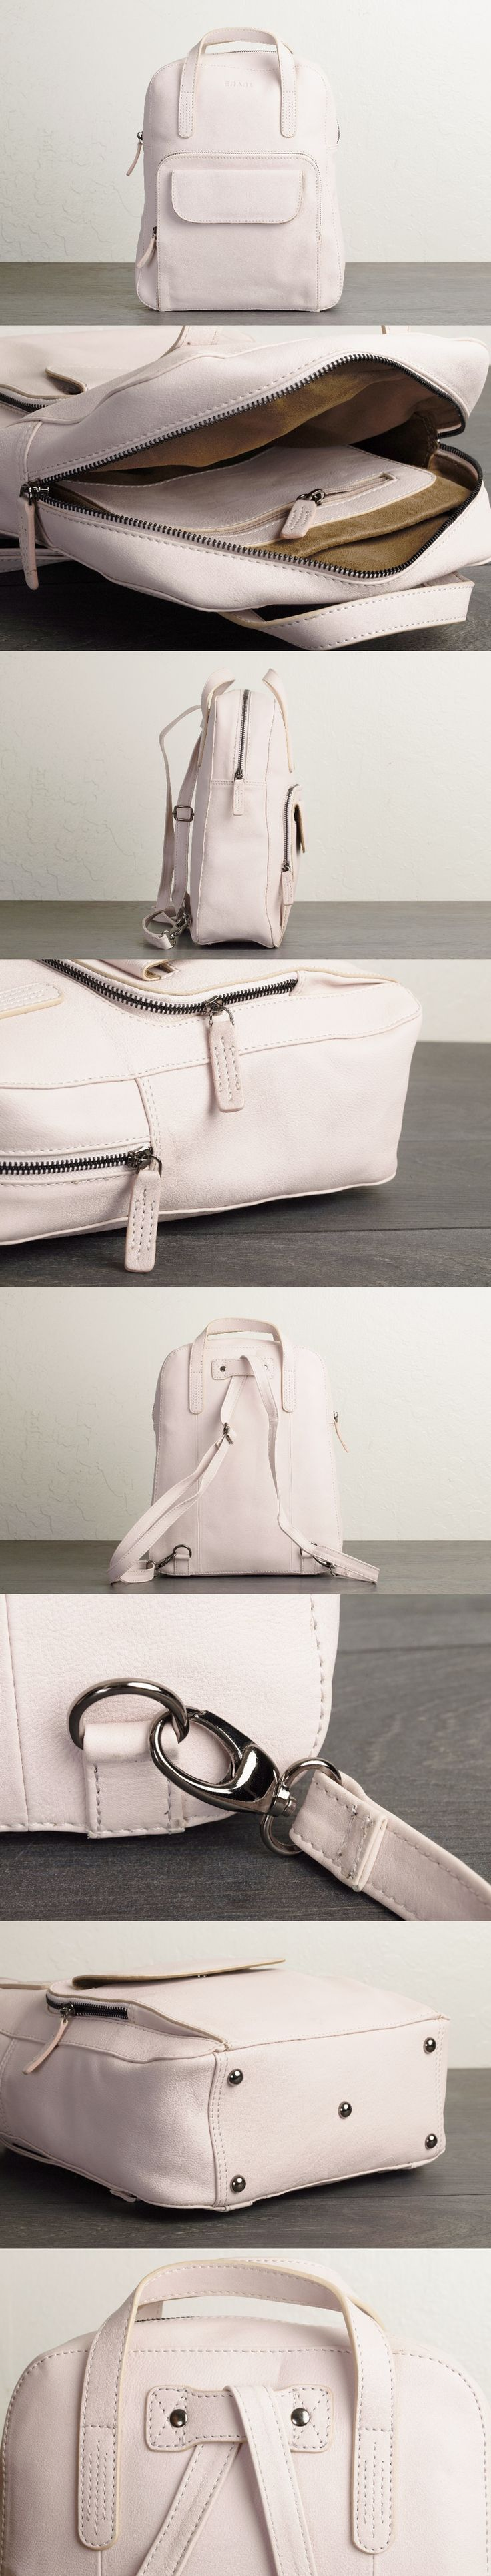 Stunning convertible #backpack purse by #TheLeatherExpert that transitions into an elegant handbag with just a quick adjustment of the removable shoulder strap. - black and white purse, best women's handbags, latest handbags online shopping *ad